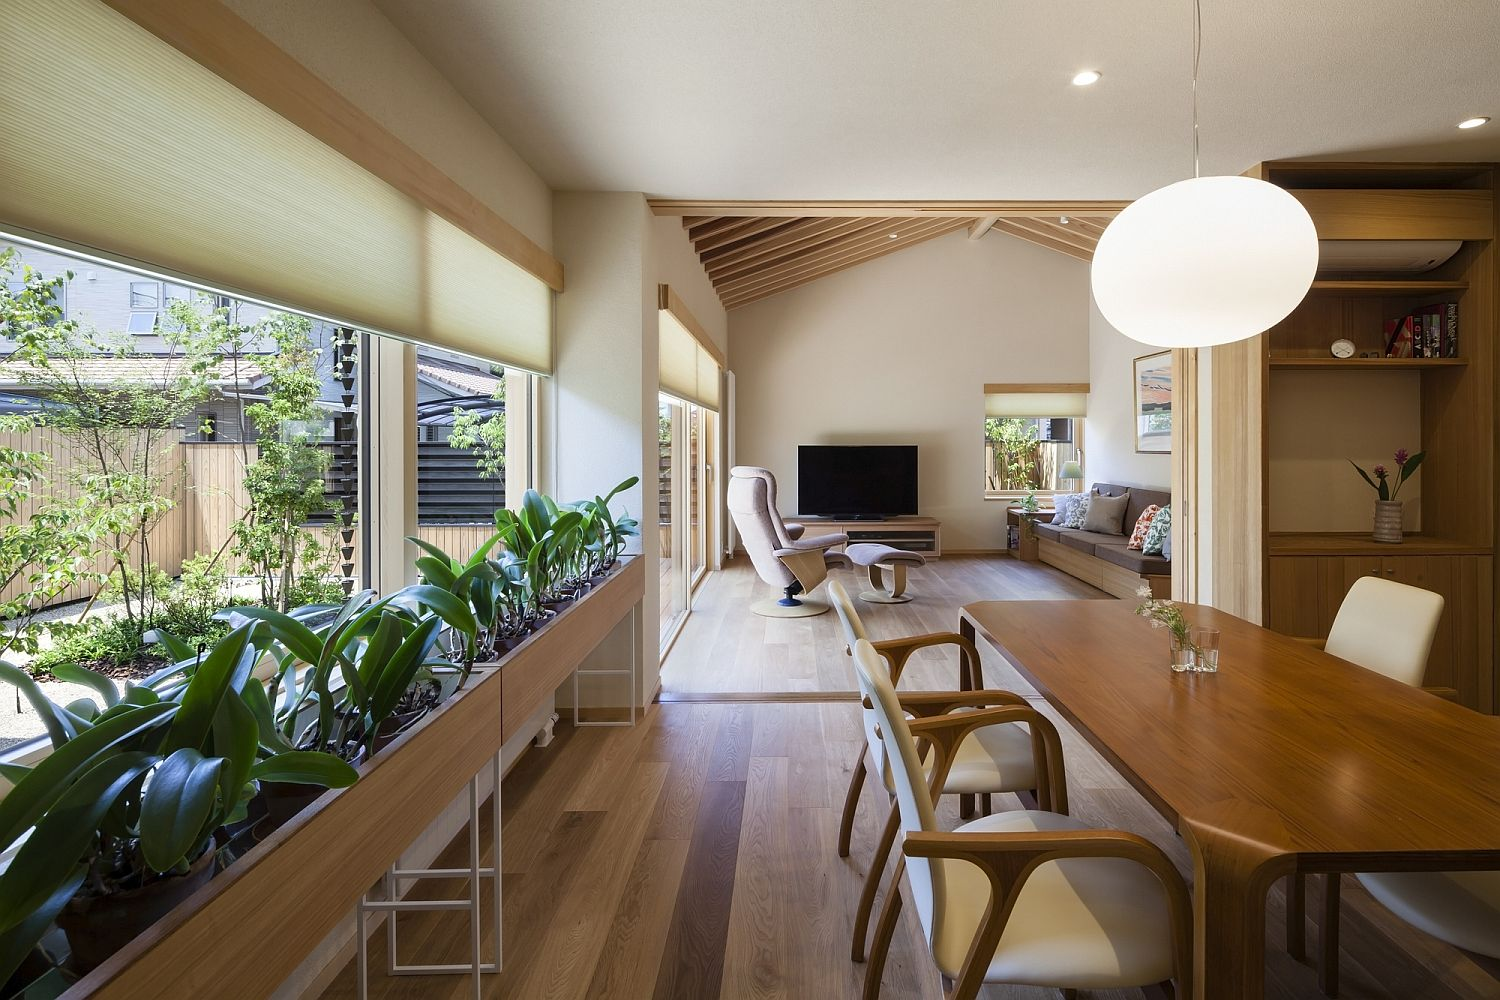 A World Of Contrasts Modern Japanese Home For An Elderly Couple